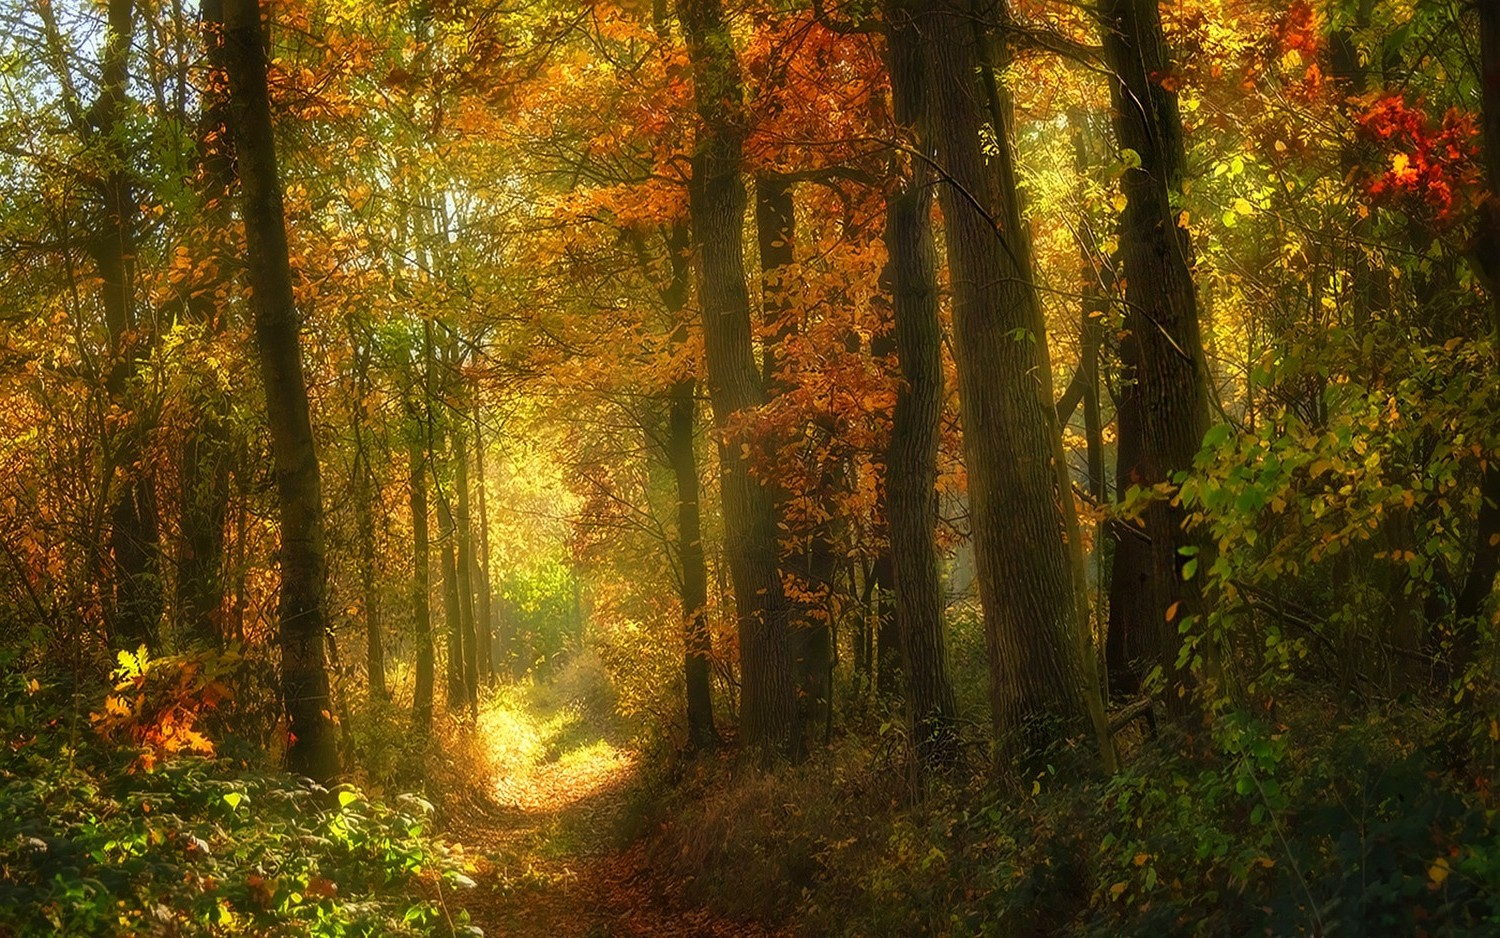 The Fall Movie Wallpaper Landscape Nature Fall Sunlight Forest Path Shrubs